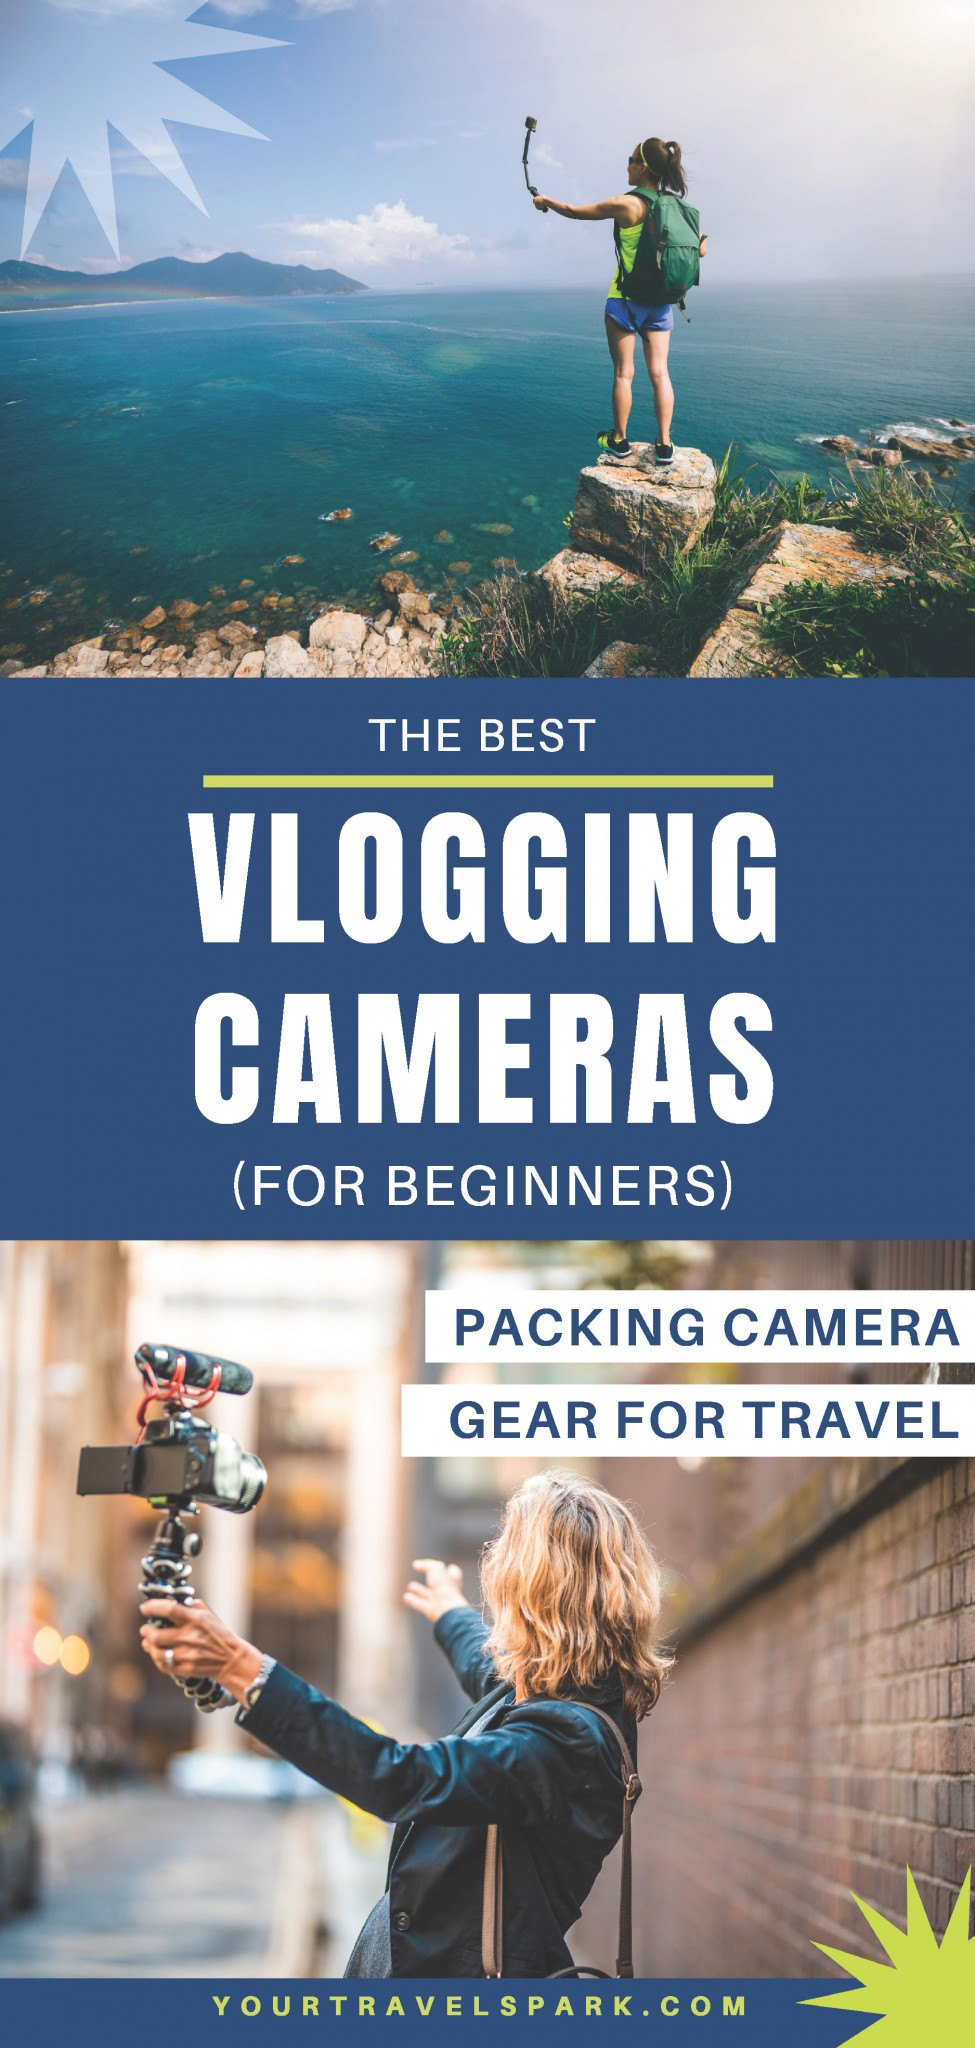 Packing camera gear for travel is an important thing to do right before going on your next trip. The best vlogging camera on a budget will get you the best video on your next trip. Here are our tips. #vlogging #vlog #vlogcamera #vloggear #vloggingcamera #vlogginggear #blog #blogcamera #youtubecamera #youtubegear #camera #cameragear #nikon #gopro